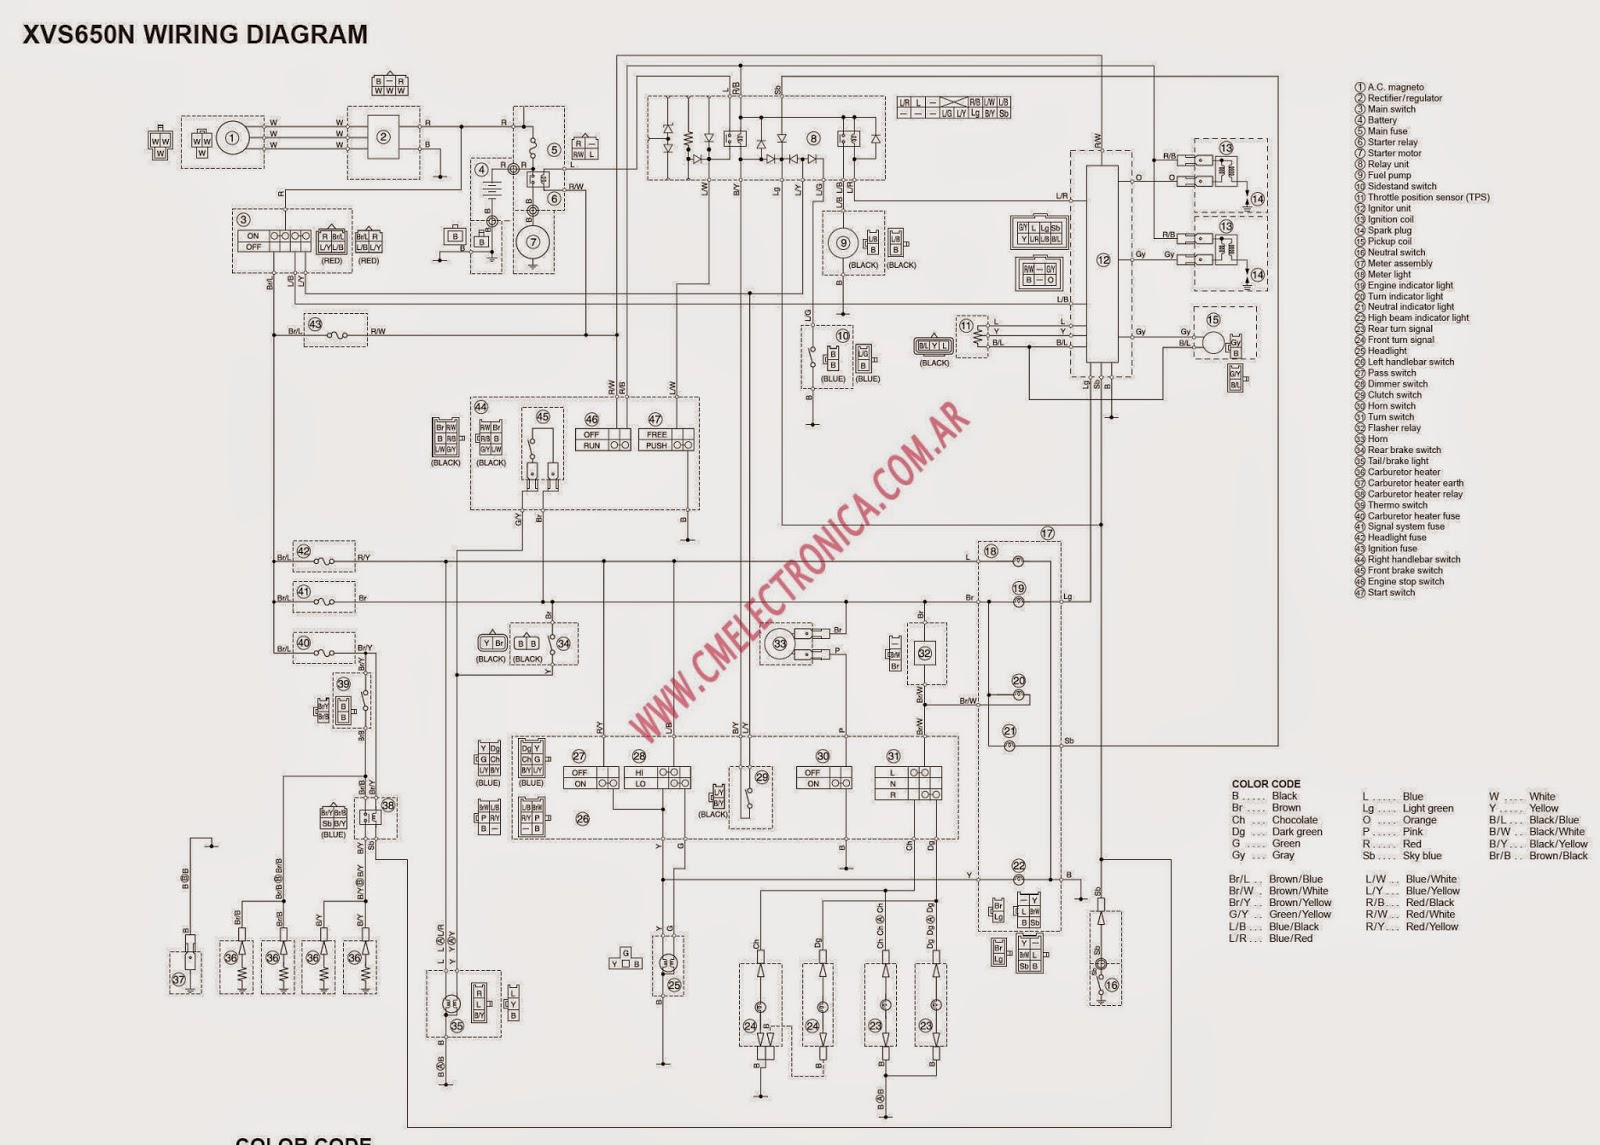 the chop shop xvs650 wiring diagram 1997 polaris sportsman 500 wiring diagram this is a wiring [ 1600 x 1145 Pixel ]